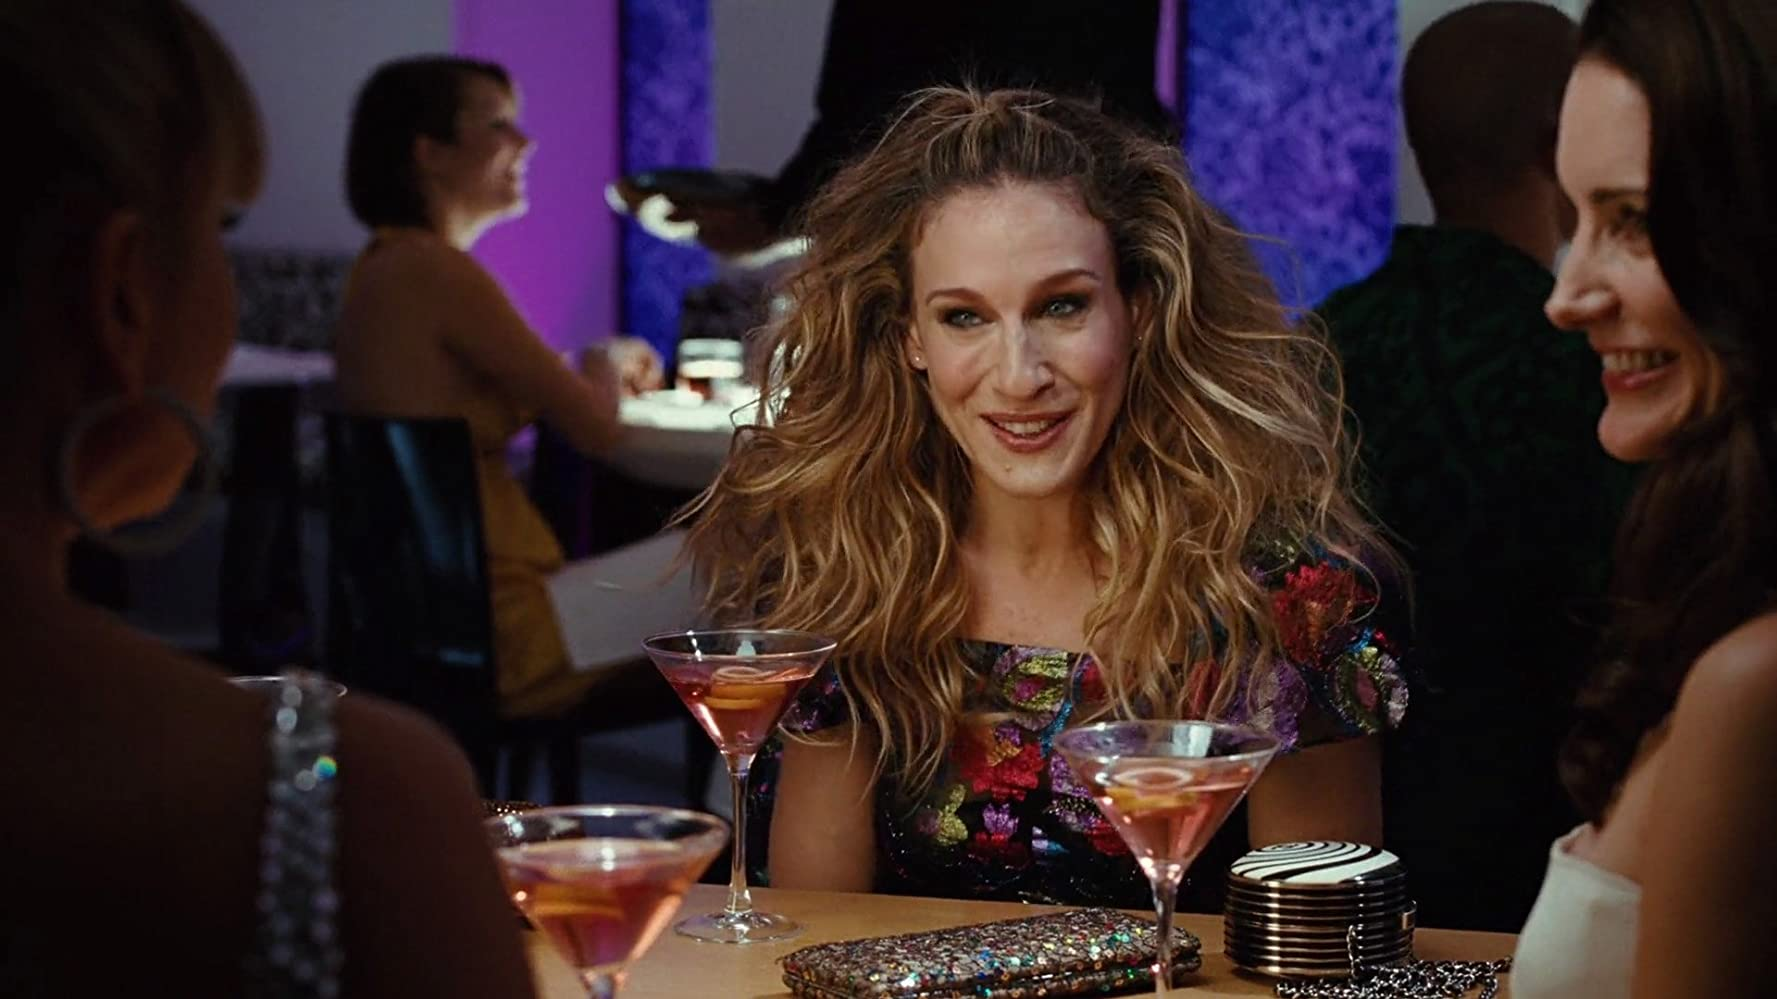 Sarah Jessica Parker and Kristin Davis in Sex and the City (2008)